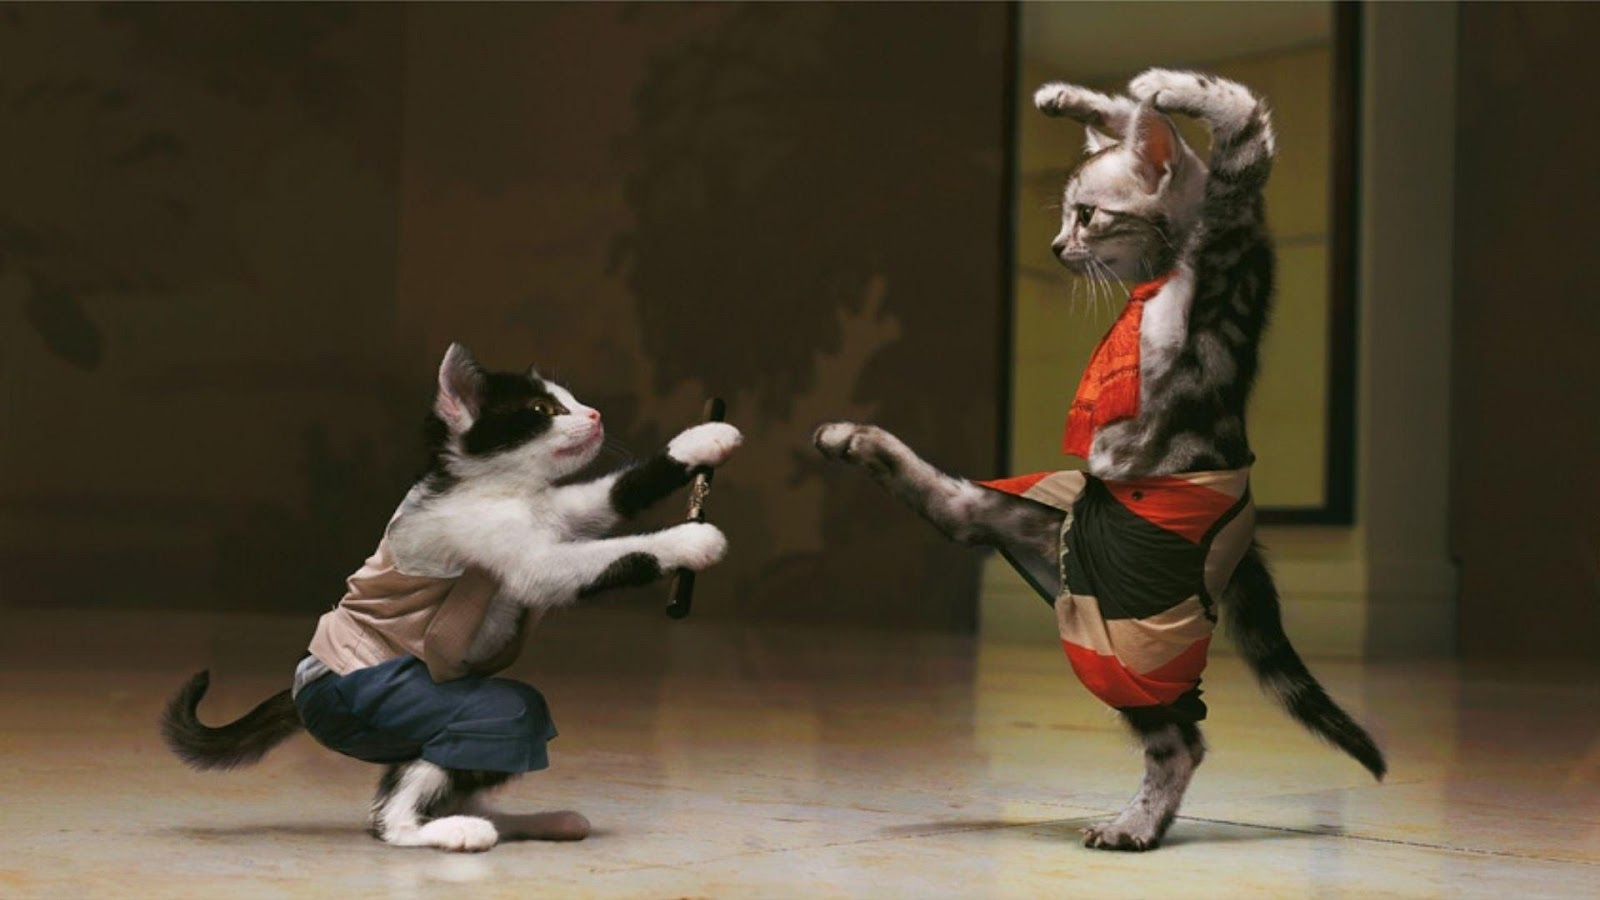 funny animals cats fighting funny animals cats fighting funny animals